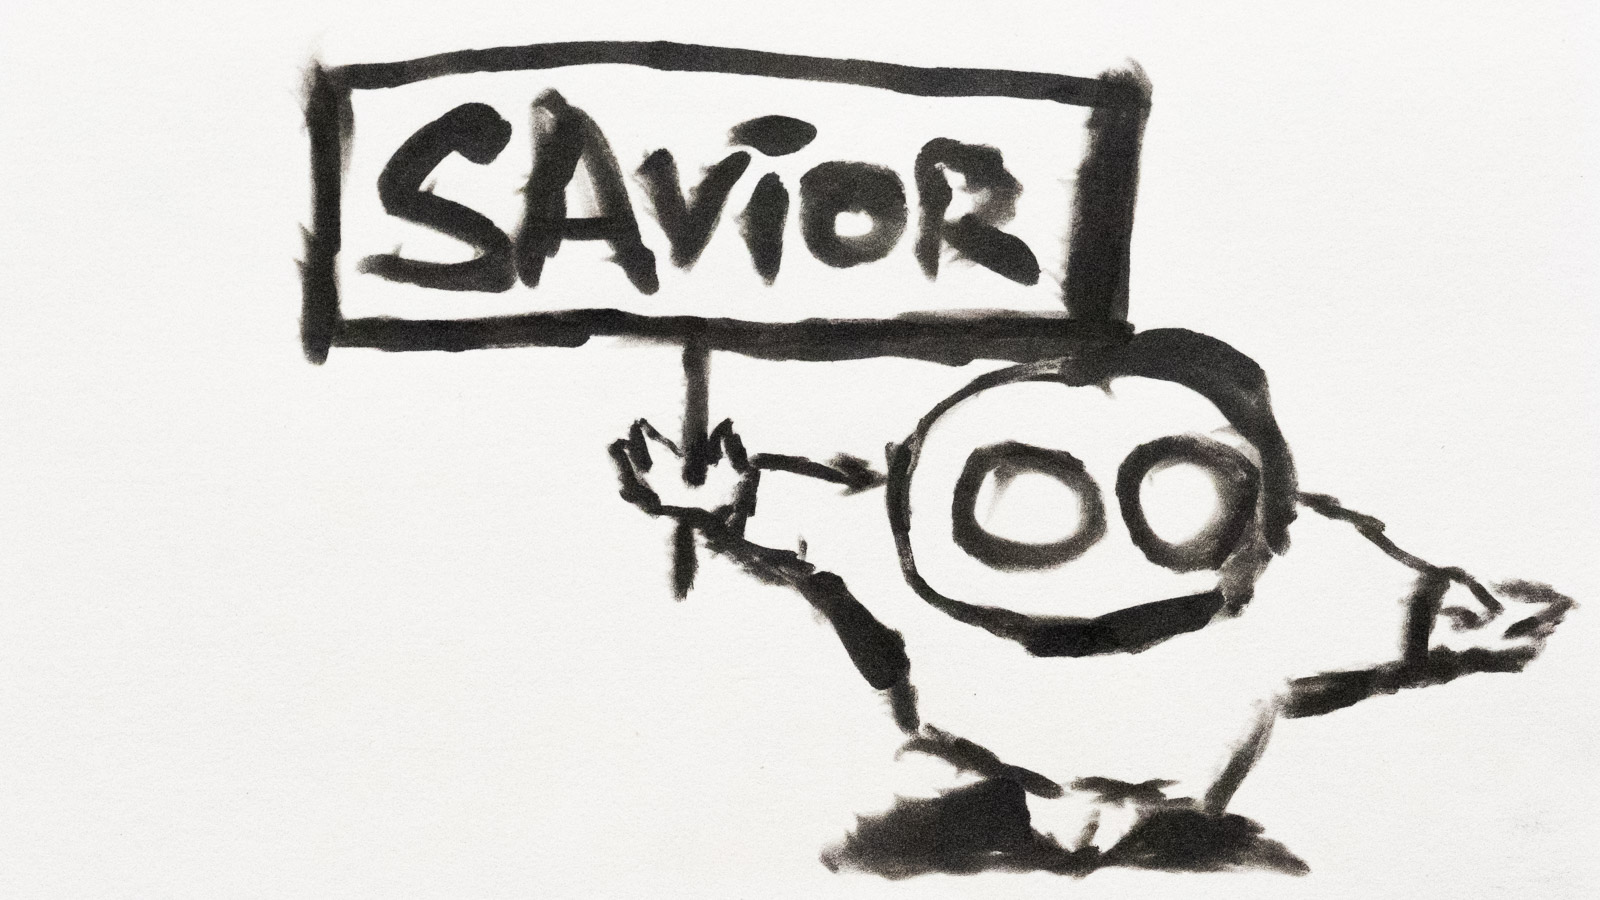 Thaddeus says Savior